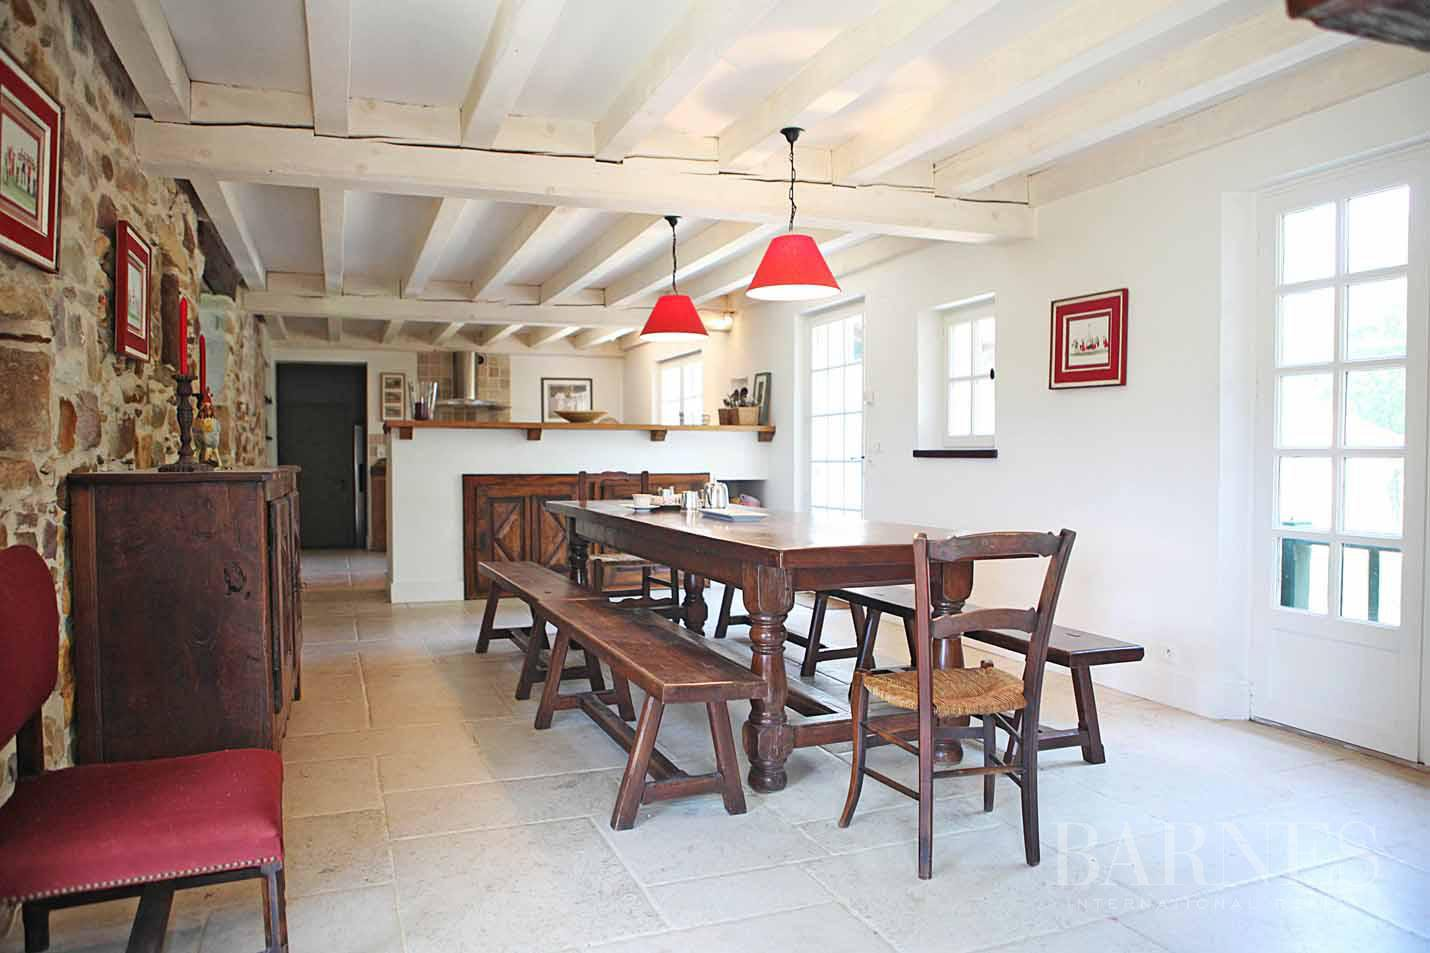 SARE, 20 MINUTES FROM SAINT JEAN DE LUZ, BASQUE STYLE FARMHOUSE WITH HEATED POOL, PANORAMIC MOUNTAIN VIEW picture 12